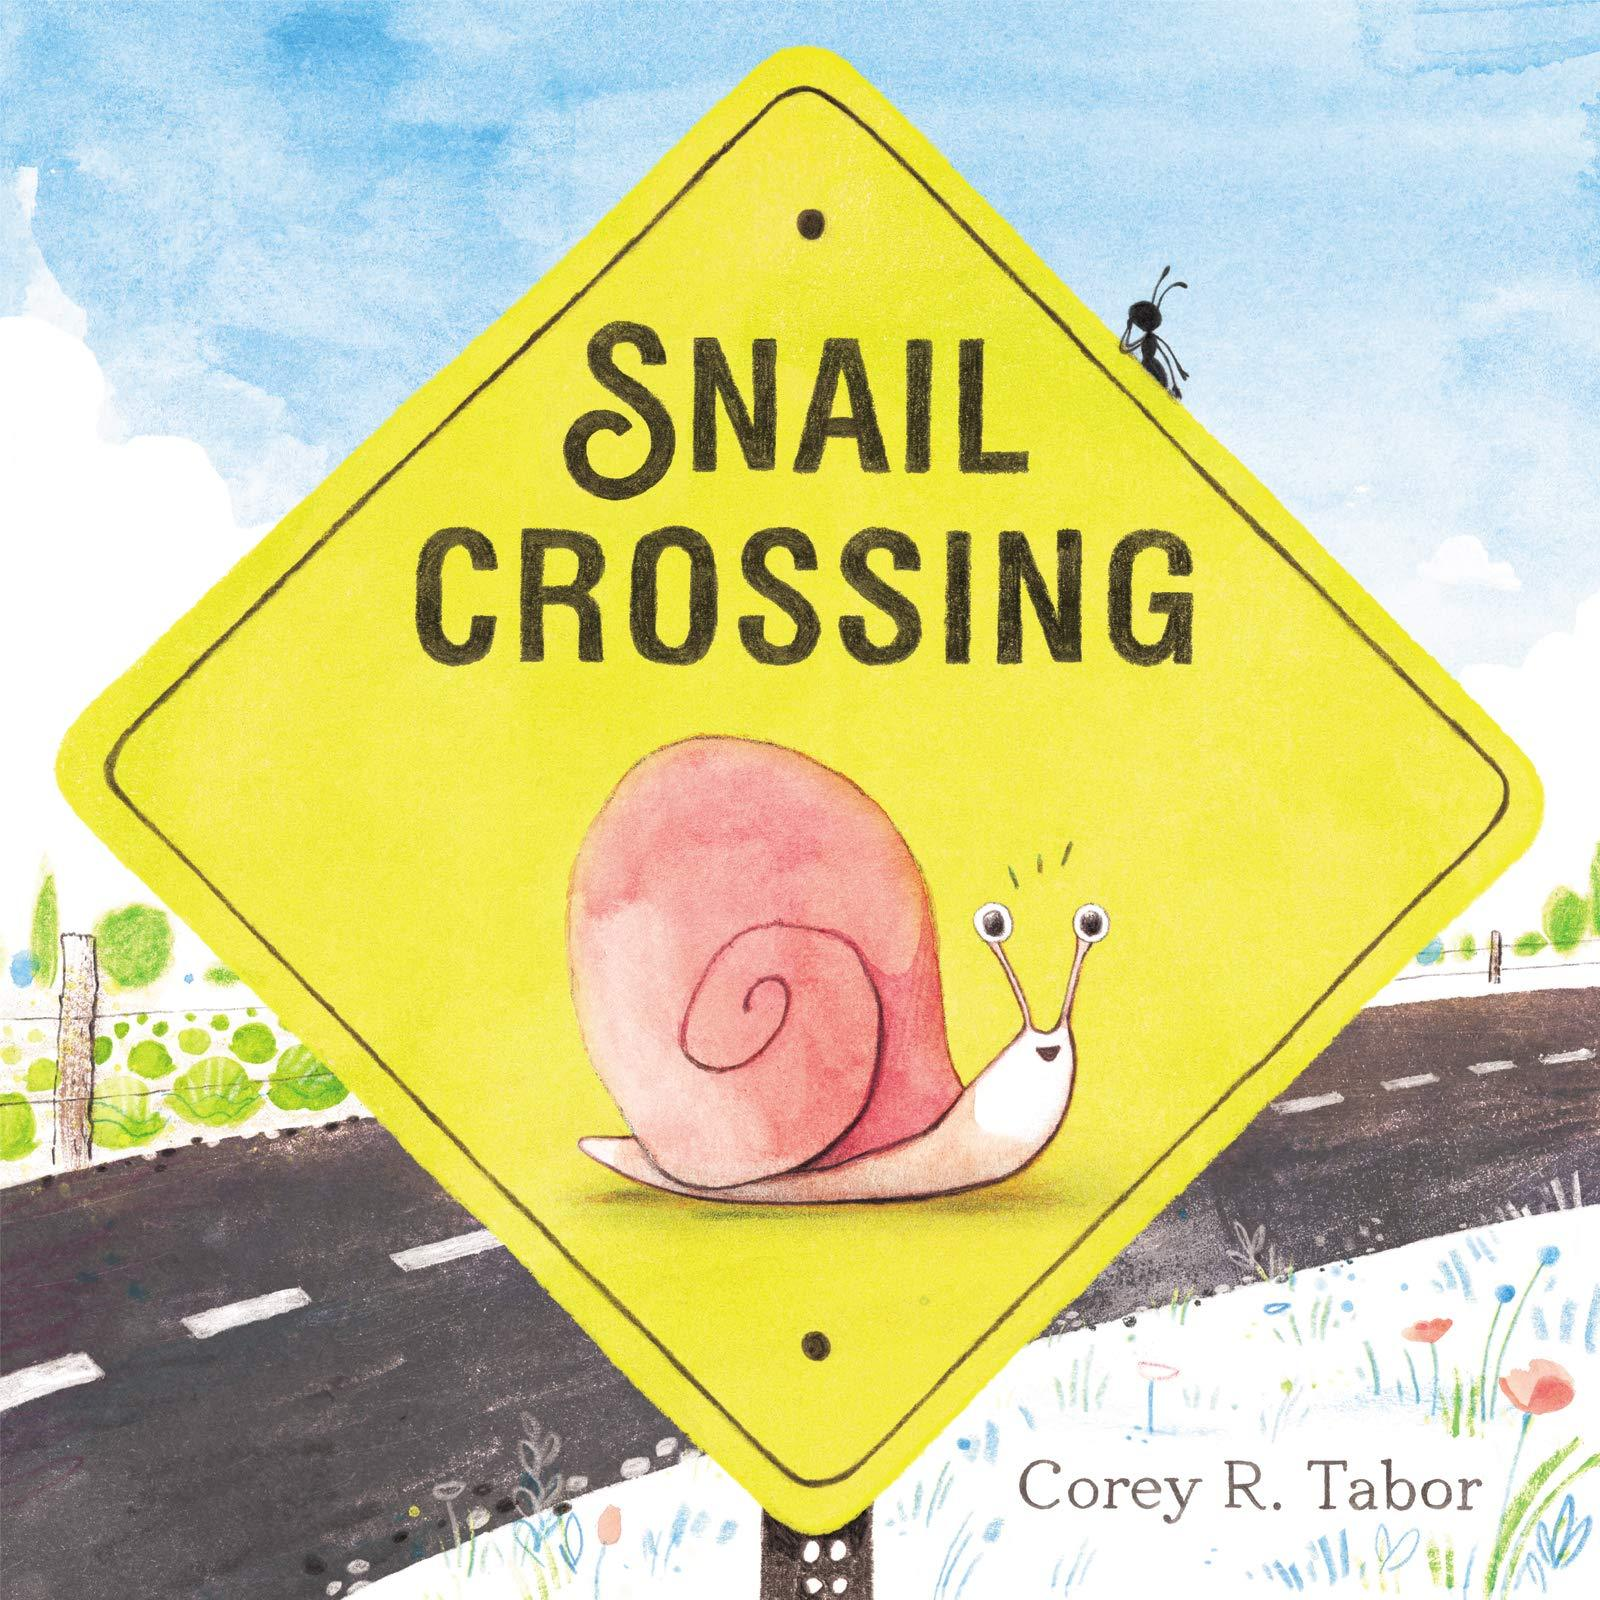 Snail Crossing